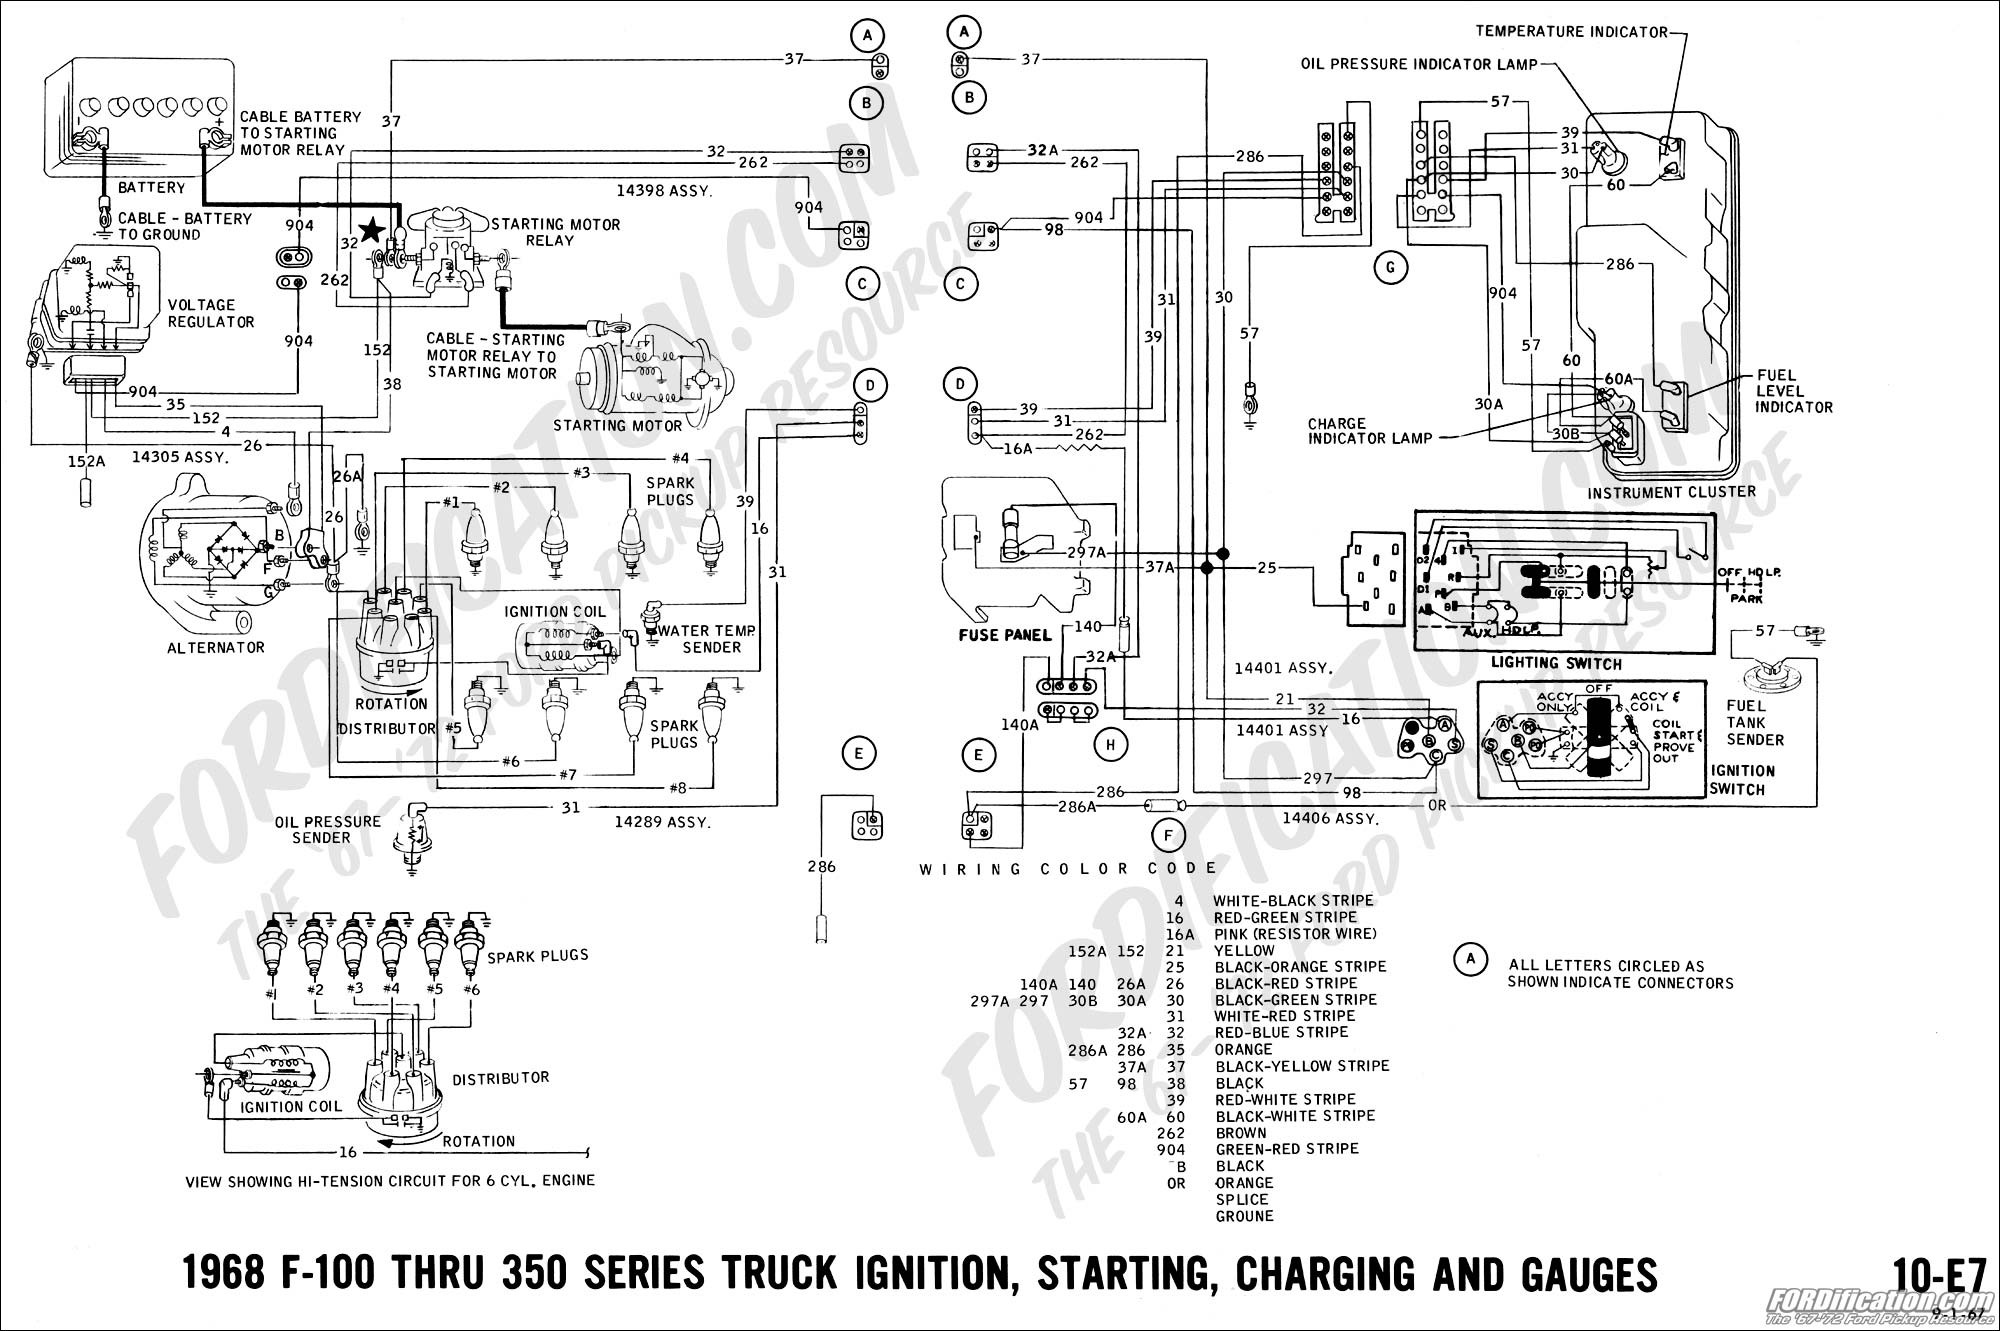 hight resolution of 2001 ford 5 4 engine diagram ford truck technical drawings and schematics section h wiring of